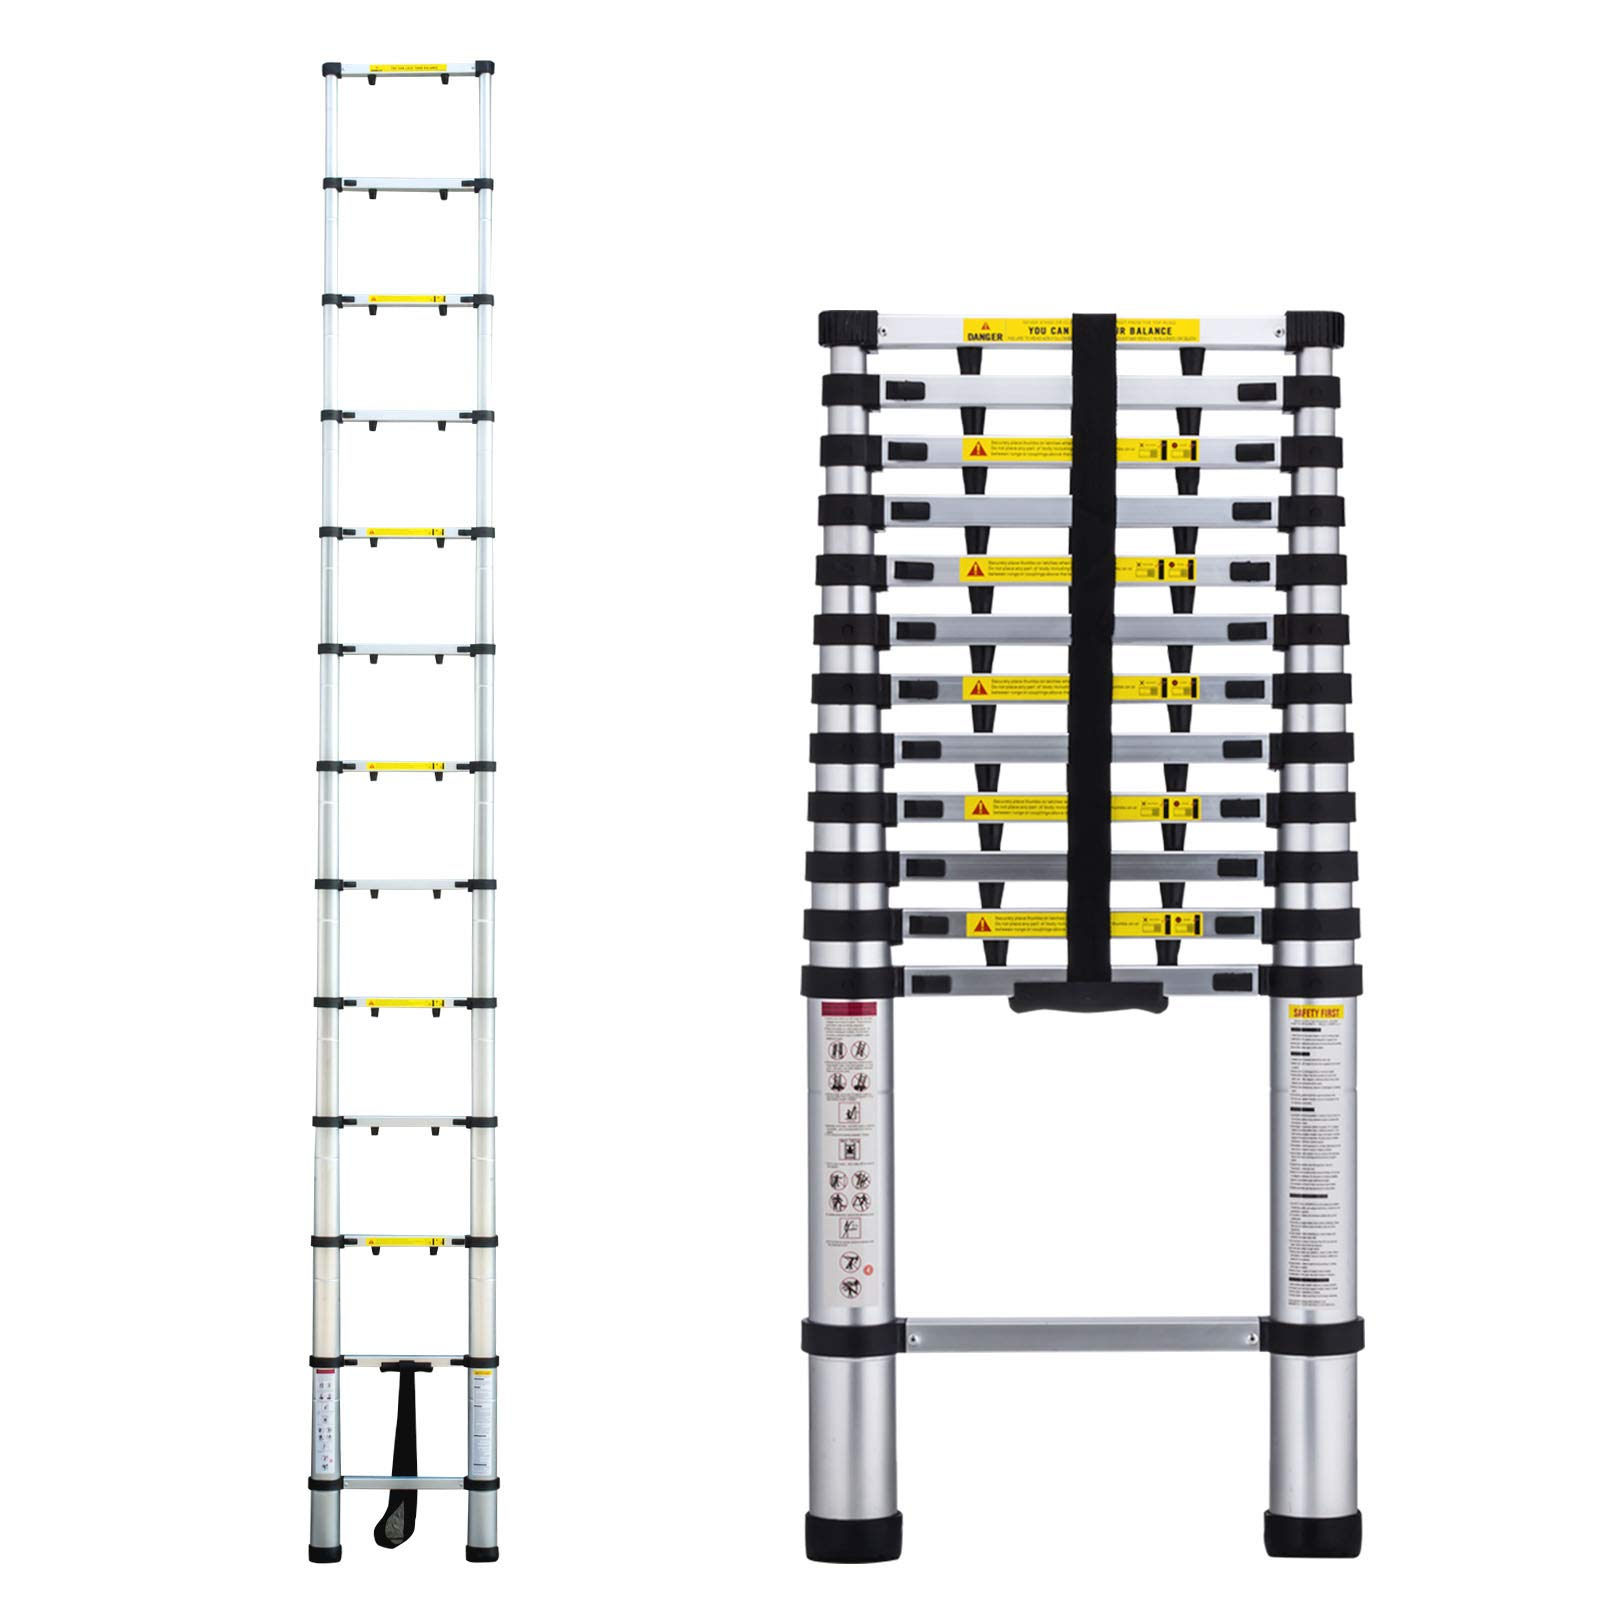 12.5FT Aluminum Telescopic Extension Ladder,EN131 Certified,Professional Heavy-Duty Foldable Telescopic Extendable Step Ladder. 330LBS Capacity